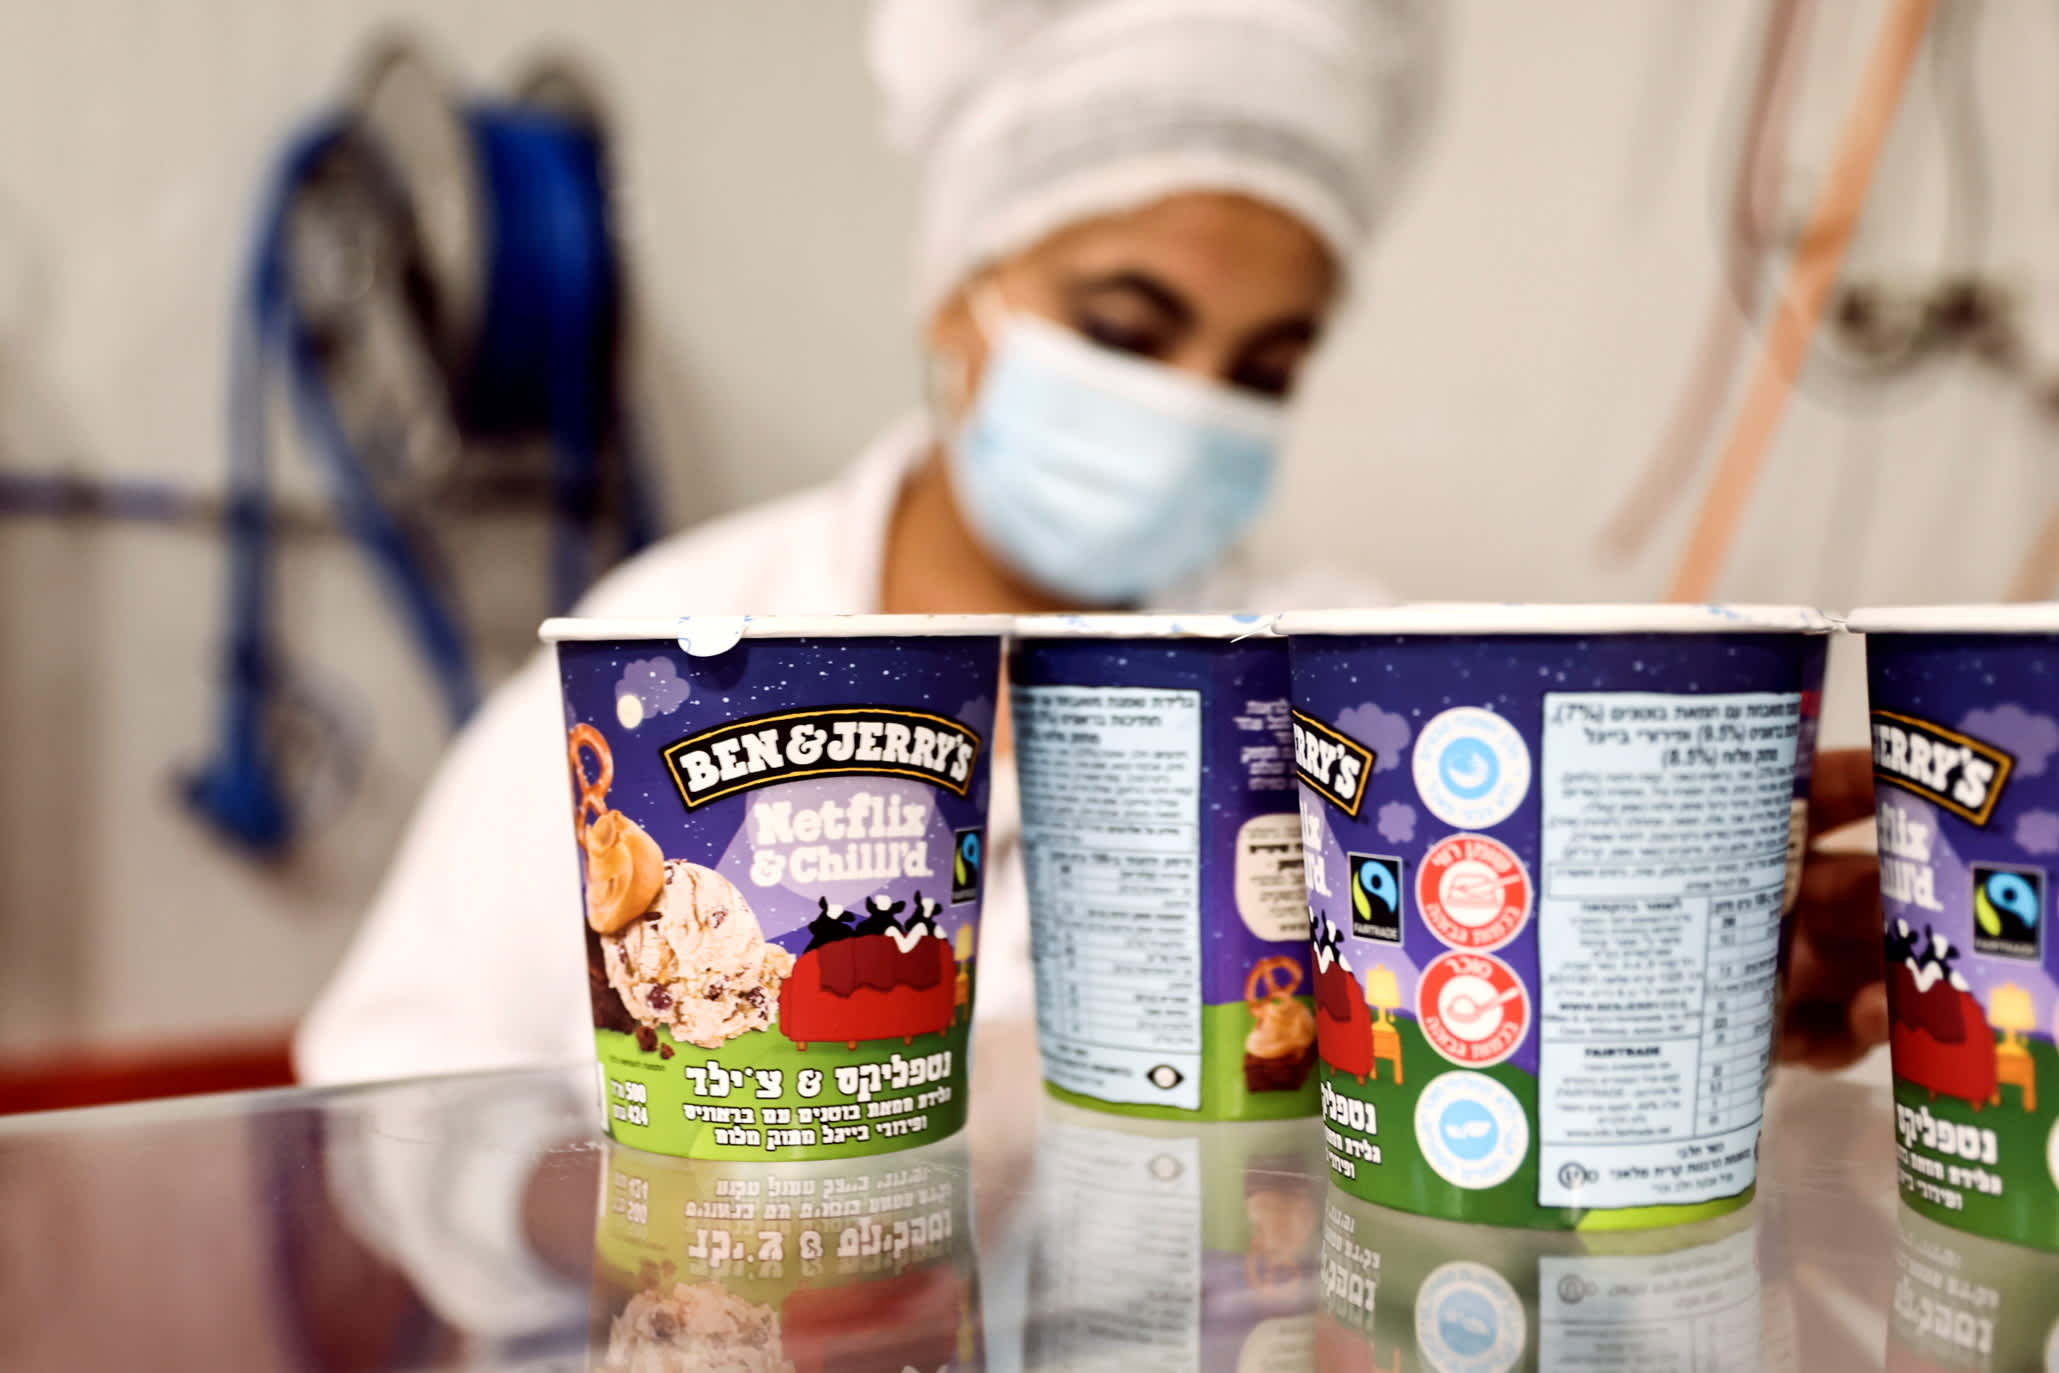 Simon Wiesenthal Center Launches Campaign Urging Stores To Stop Sale of Ben & Jerry's Products